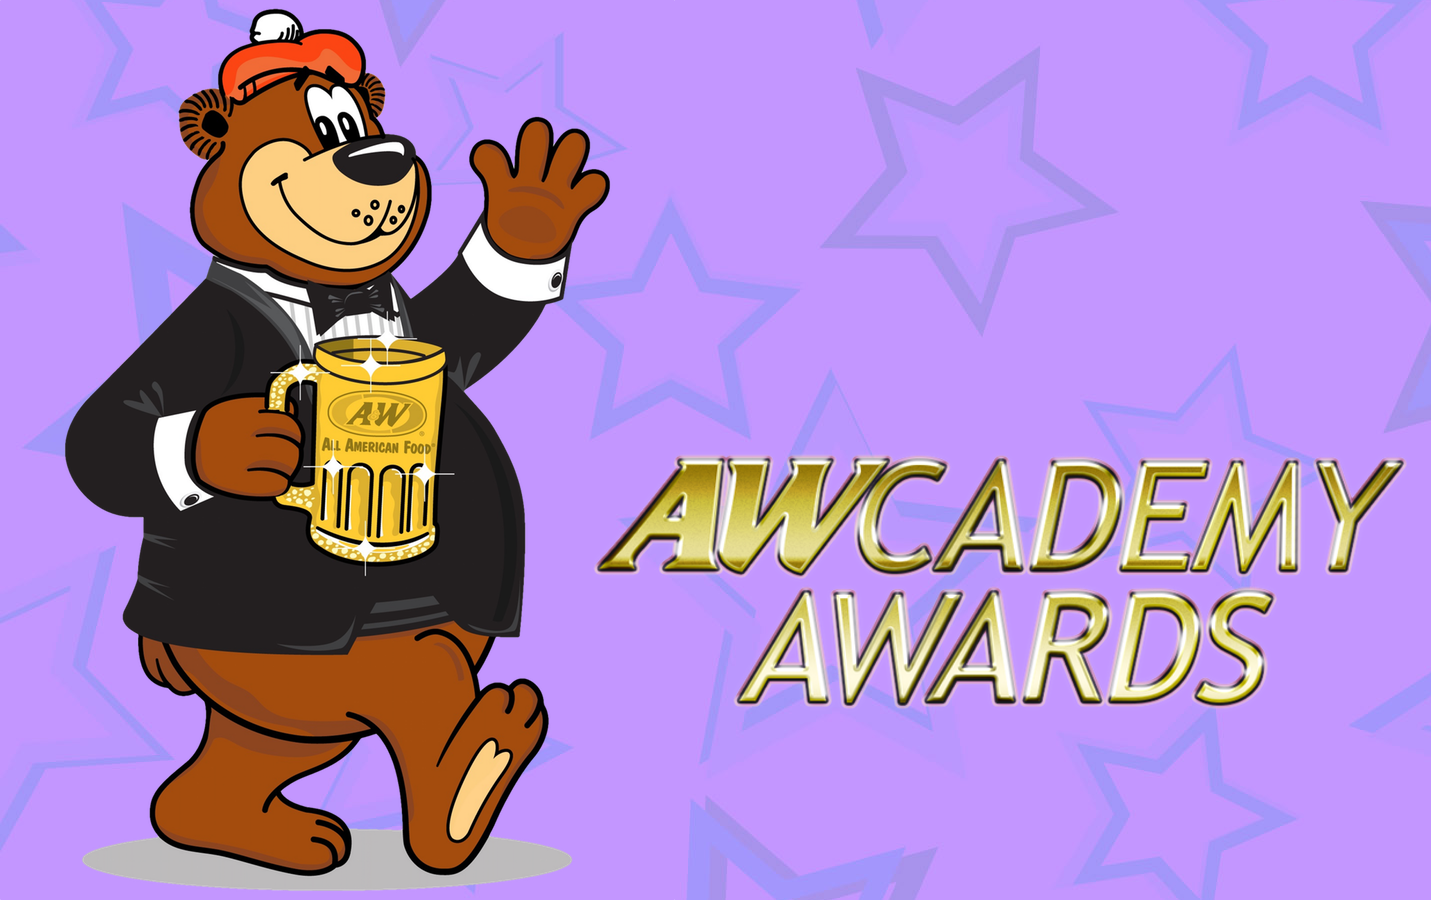 Rooty AWcademy Awards